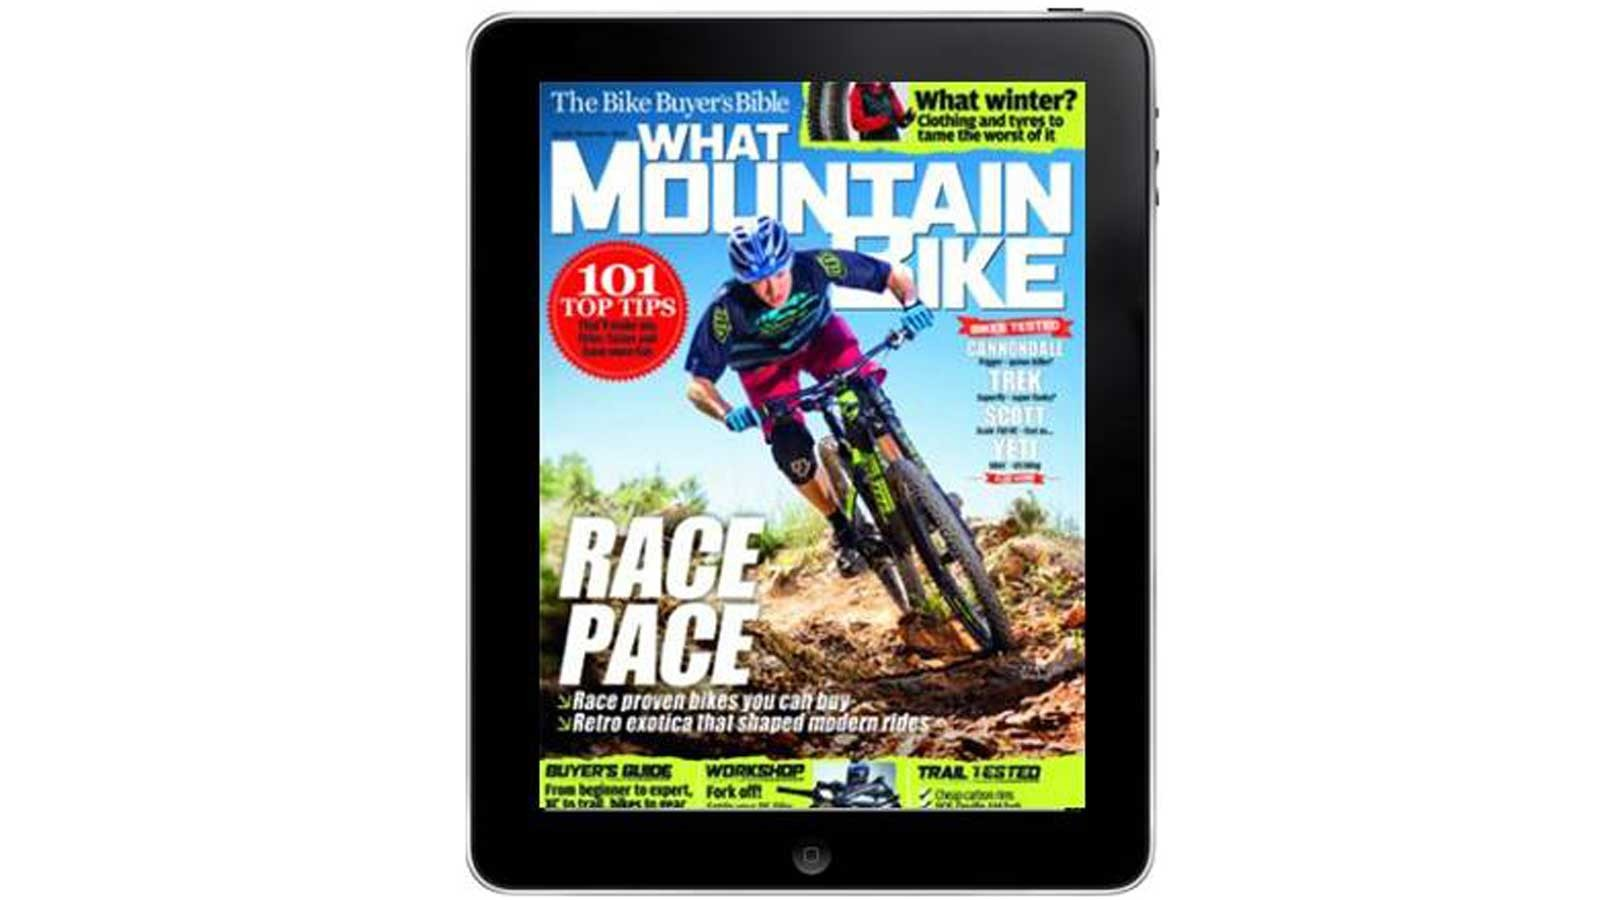 Want a new mountain bike? Look no further